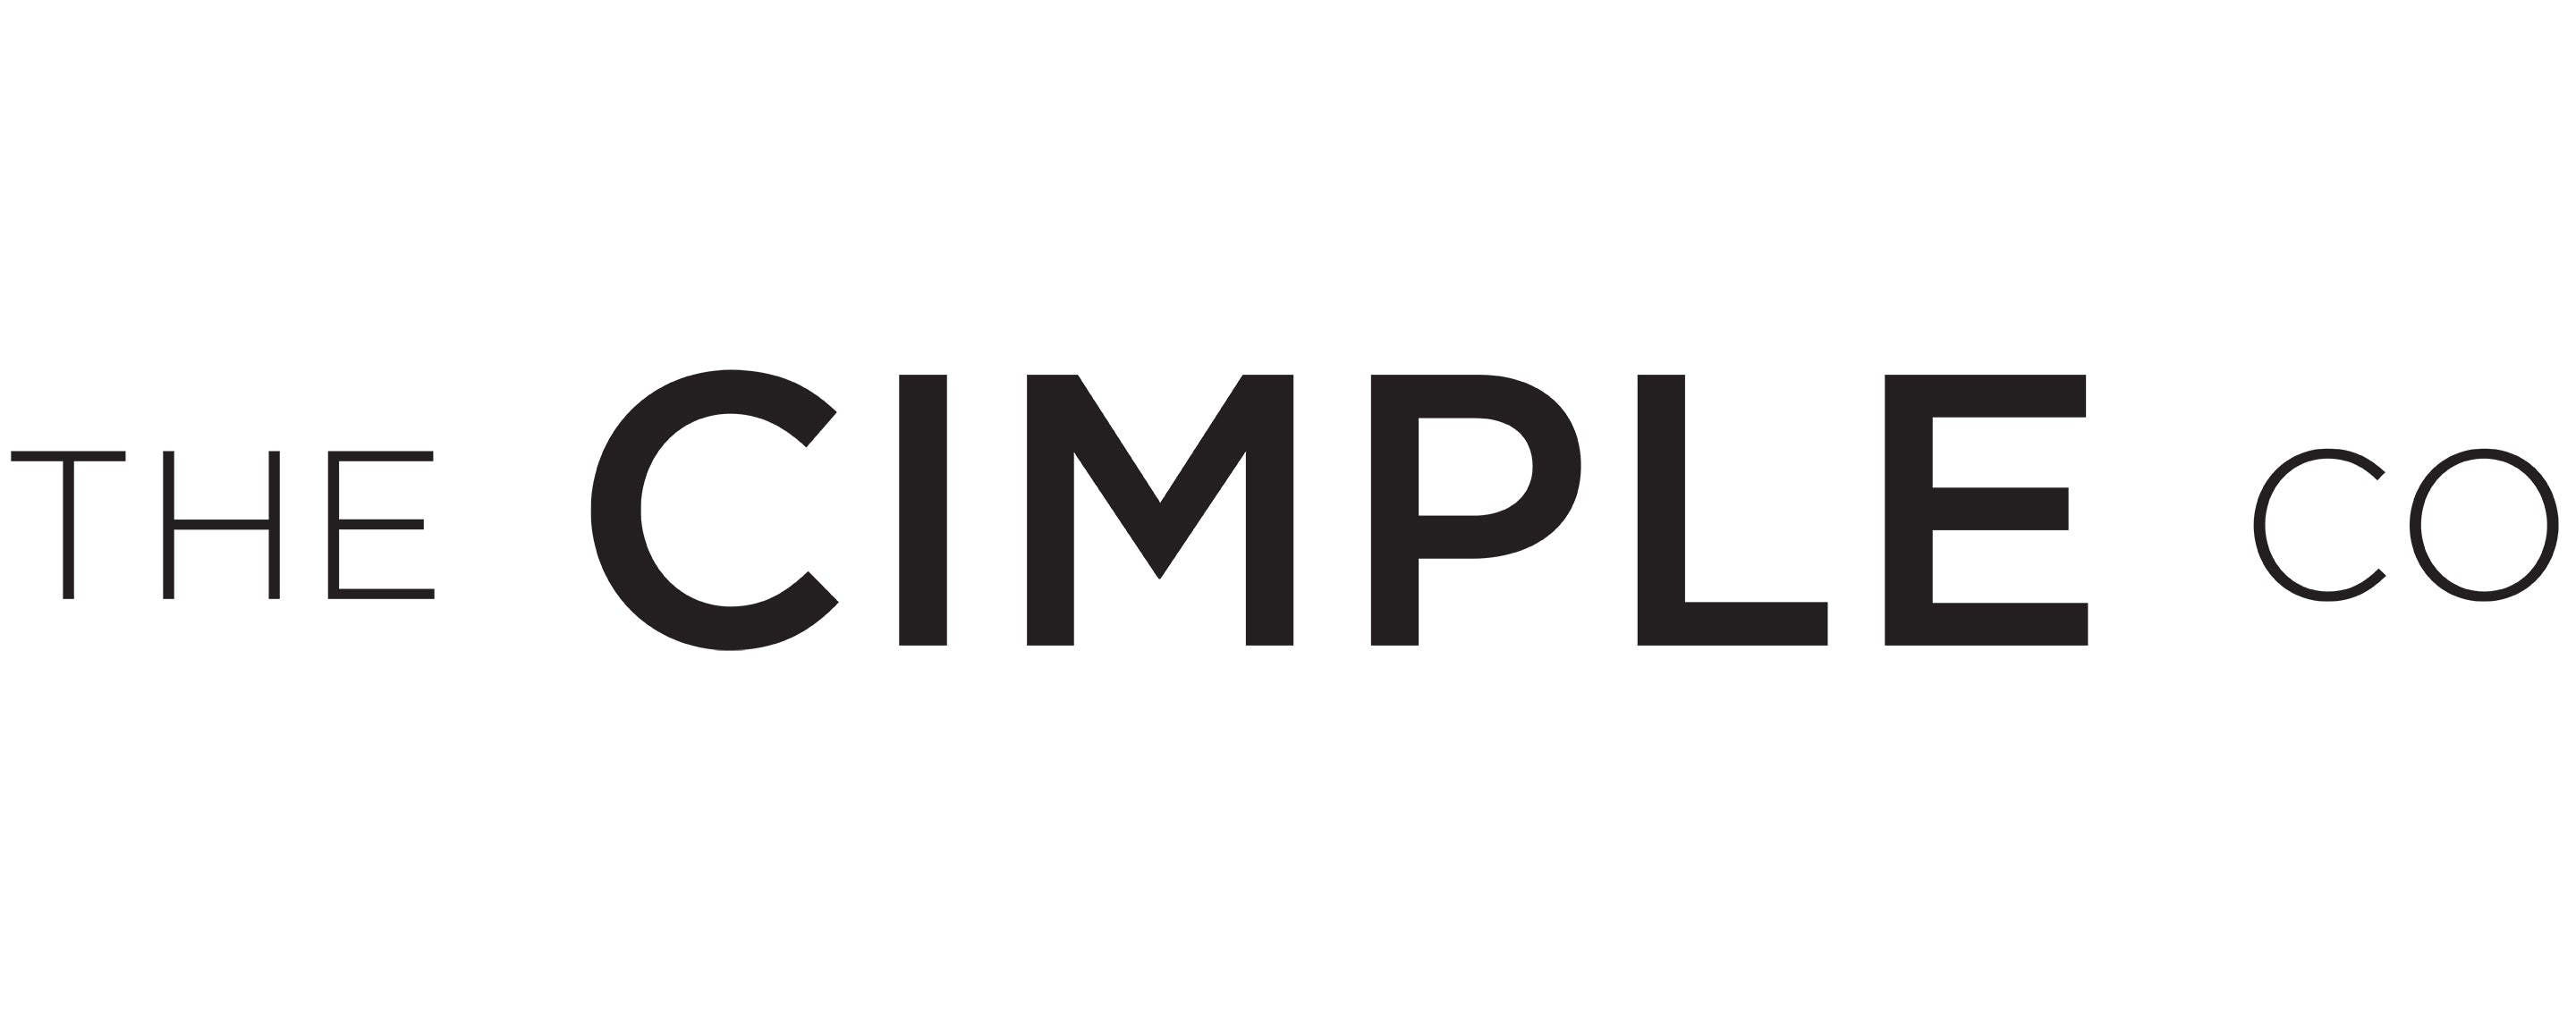 files/CIMPLECO_logo_h_2880x1144.jpg